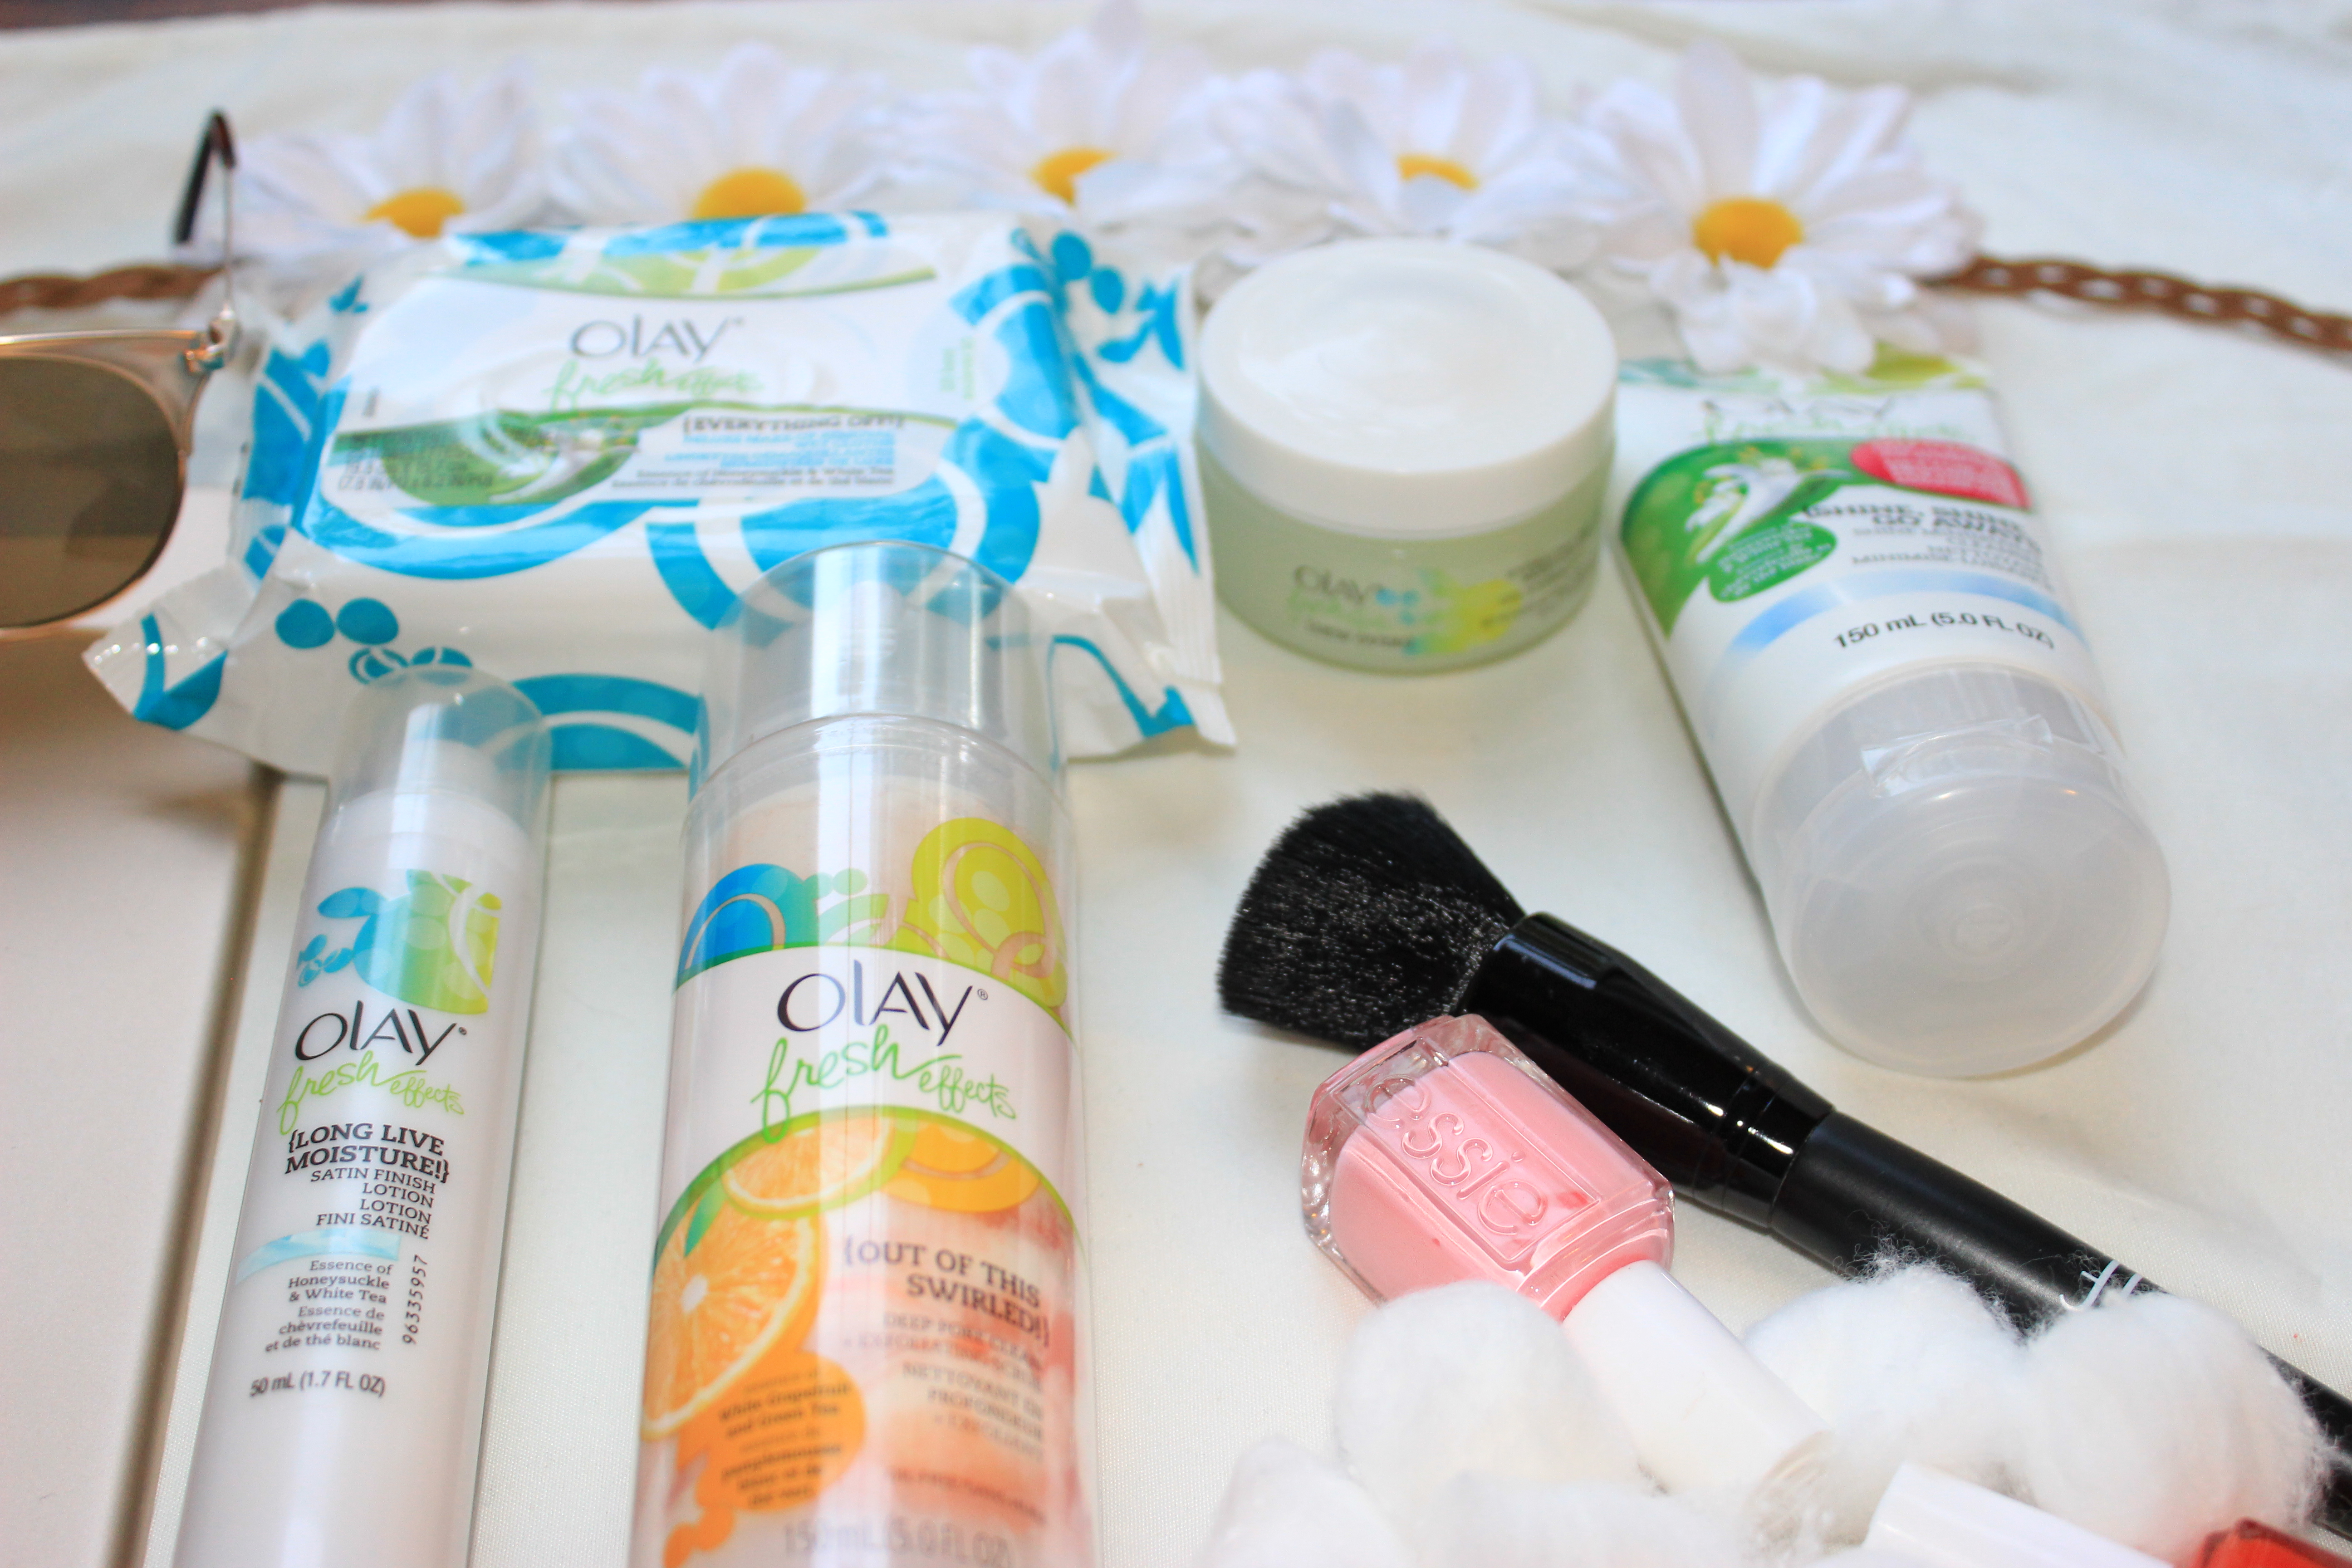 Friday-favorites-Fresh-Effects-SWipe-Out- Refreshing-Makeup-Shine-Shine-Go-Away  -Cleanser-Olay-Fresh-Effects-Out-of-This-Swirled-Scrub-Olay-Fresh-Effects-Dew-Over-Hydrating-Gel-Olay-Fresh-Effects- Long- Live Moisture-Oohlalablog-11